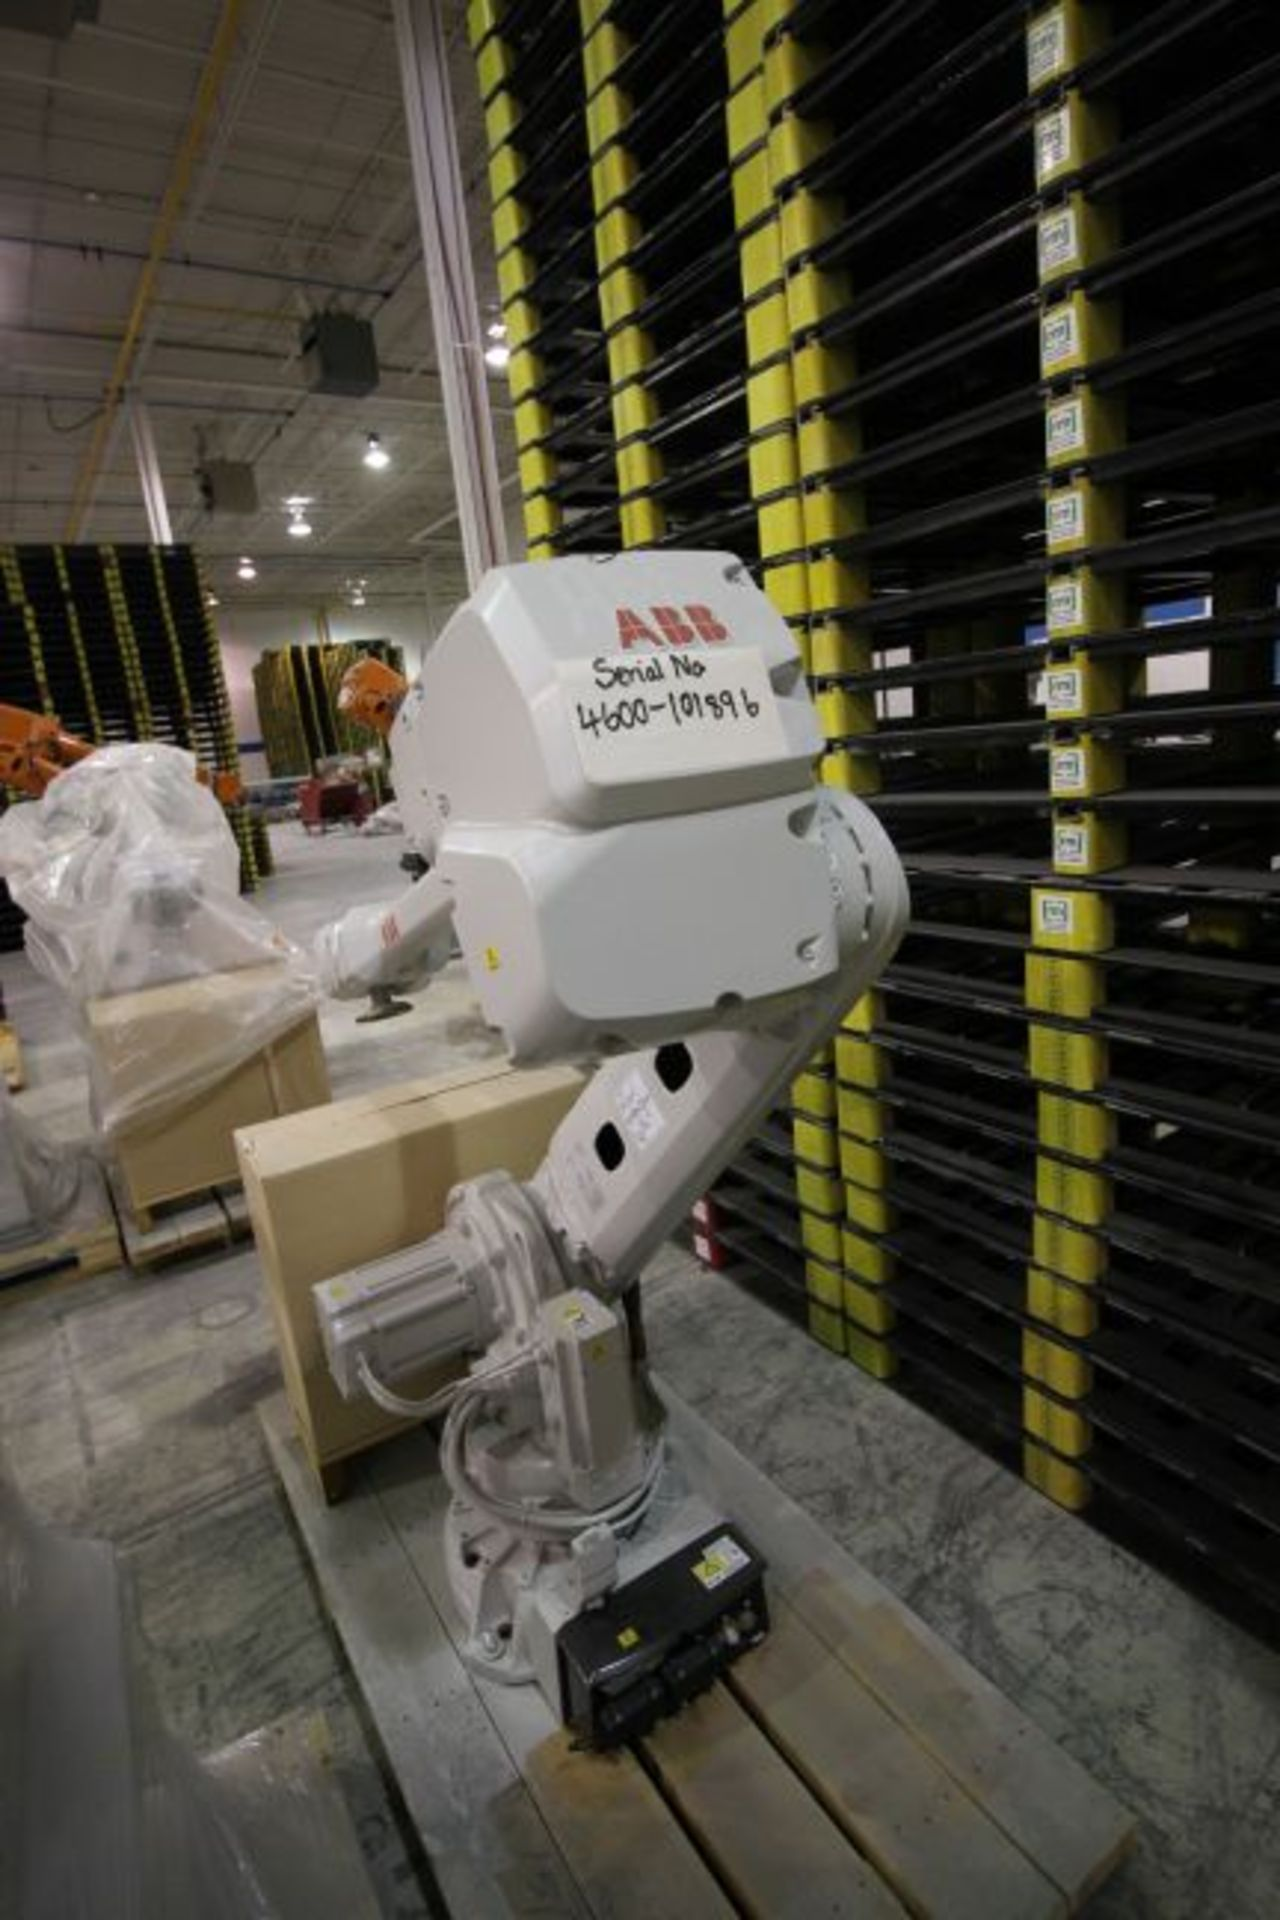 ABB ROBOT IRB 4600 2.55/40KG WITH IRC5 CONTROLS, YEAR 2015, 101896 TEACH PENDANT& CABLES - Image 4 of 11